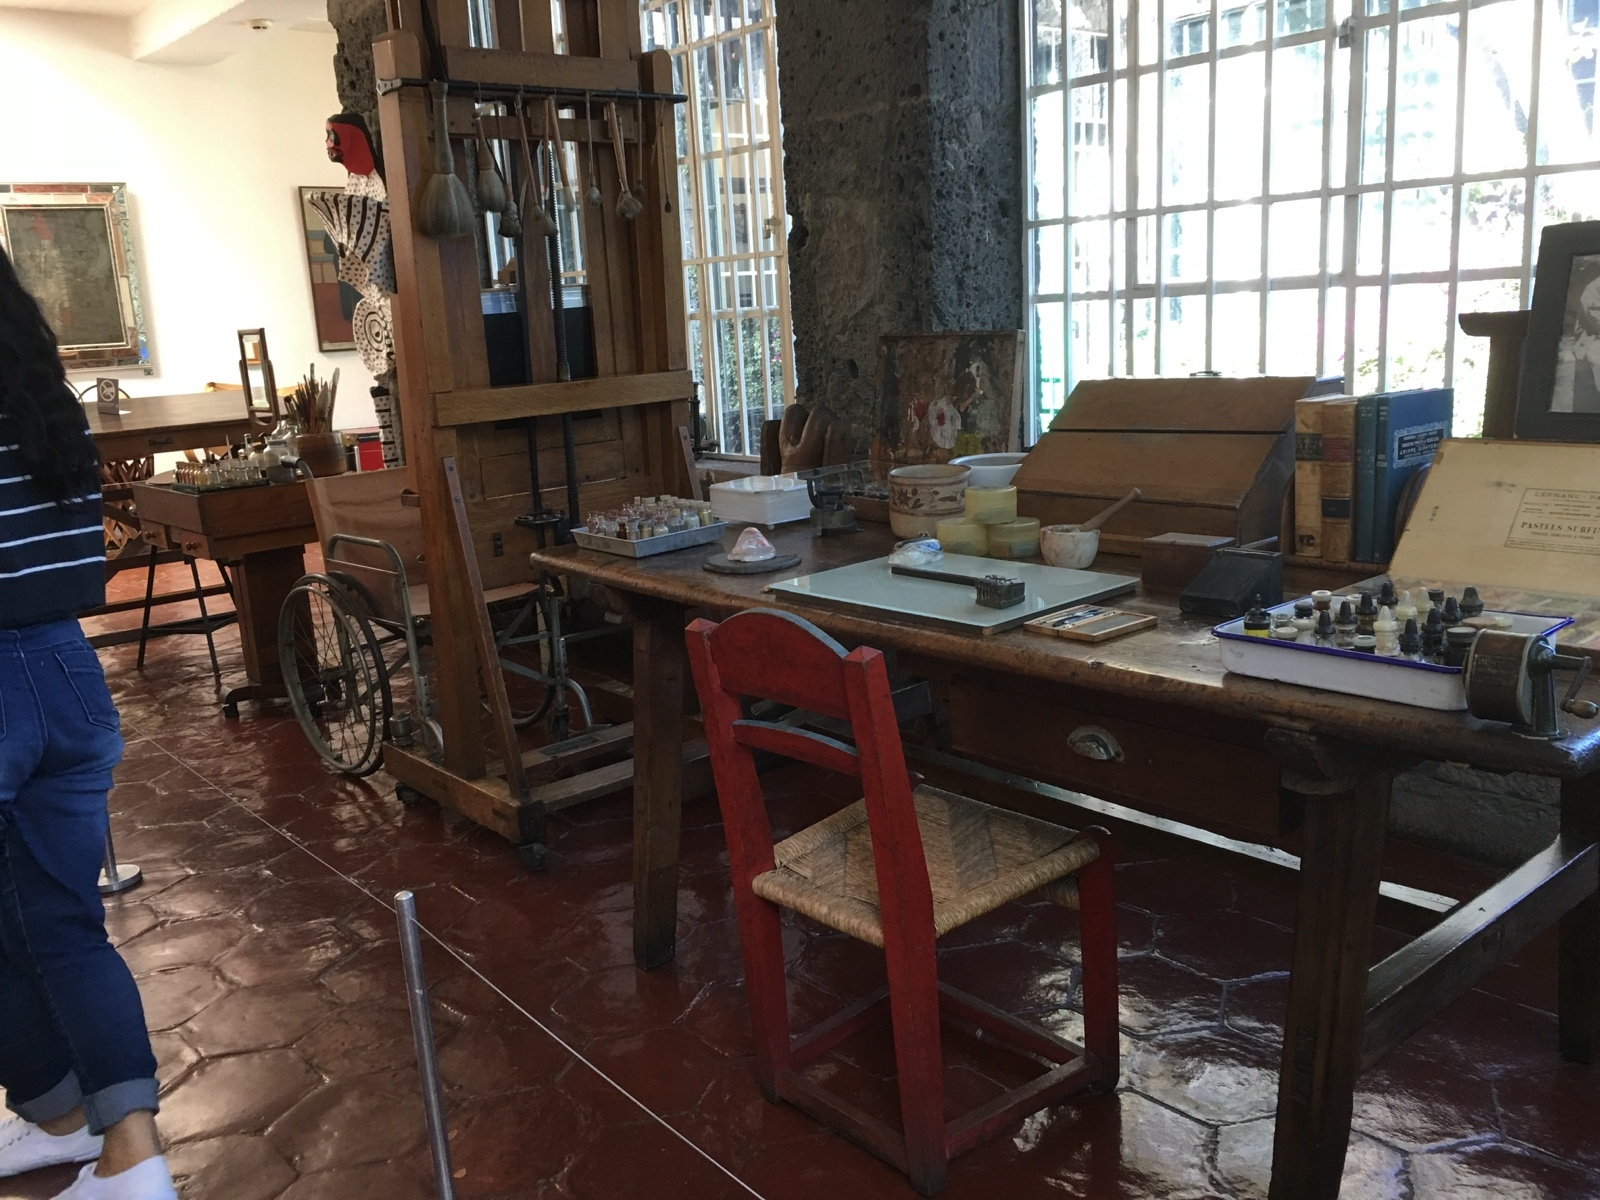 Artist studio of Frida Kahlo